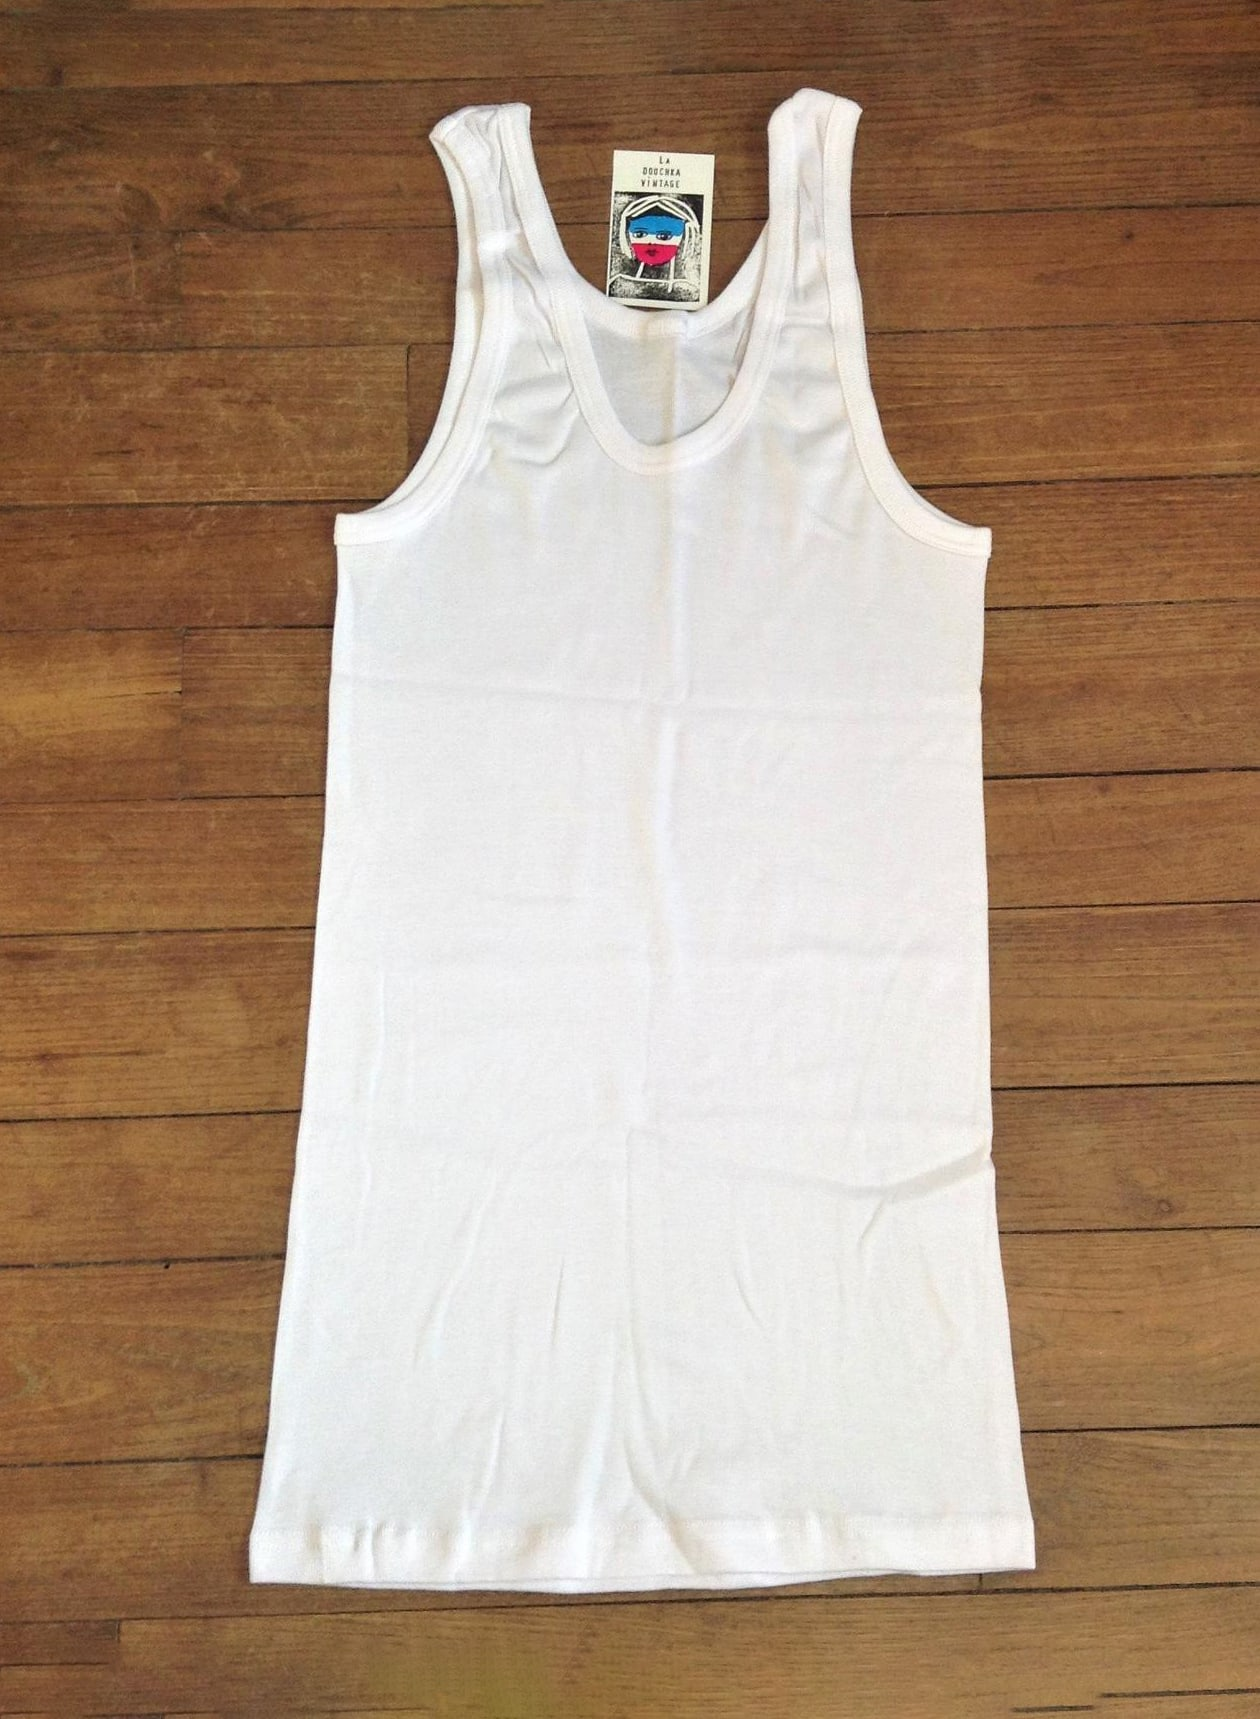 dc reco French 1970s Vintage Stretchable Underwear Undershirt Tank Top